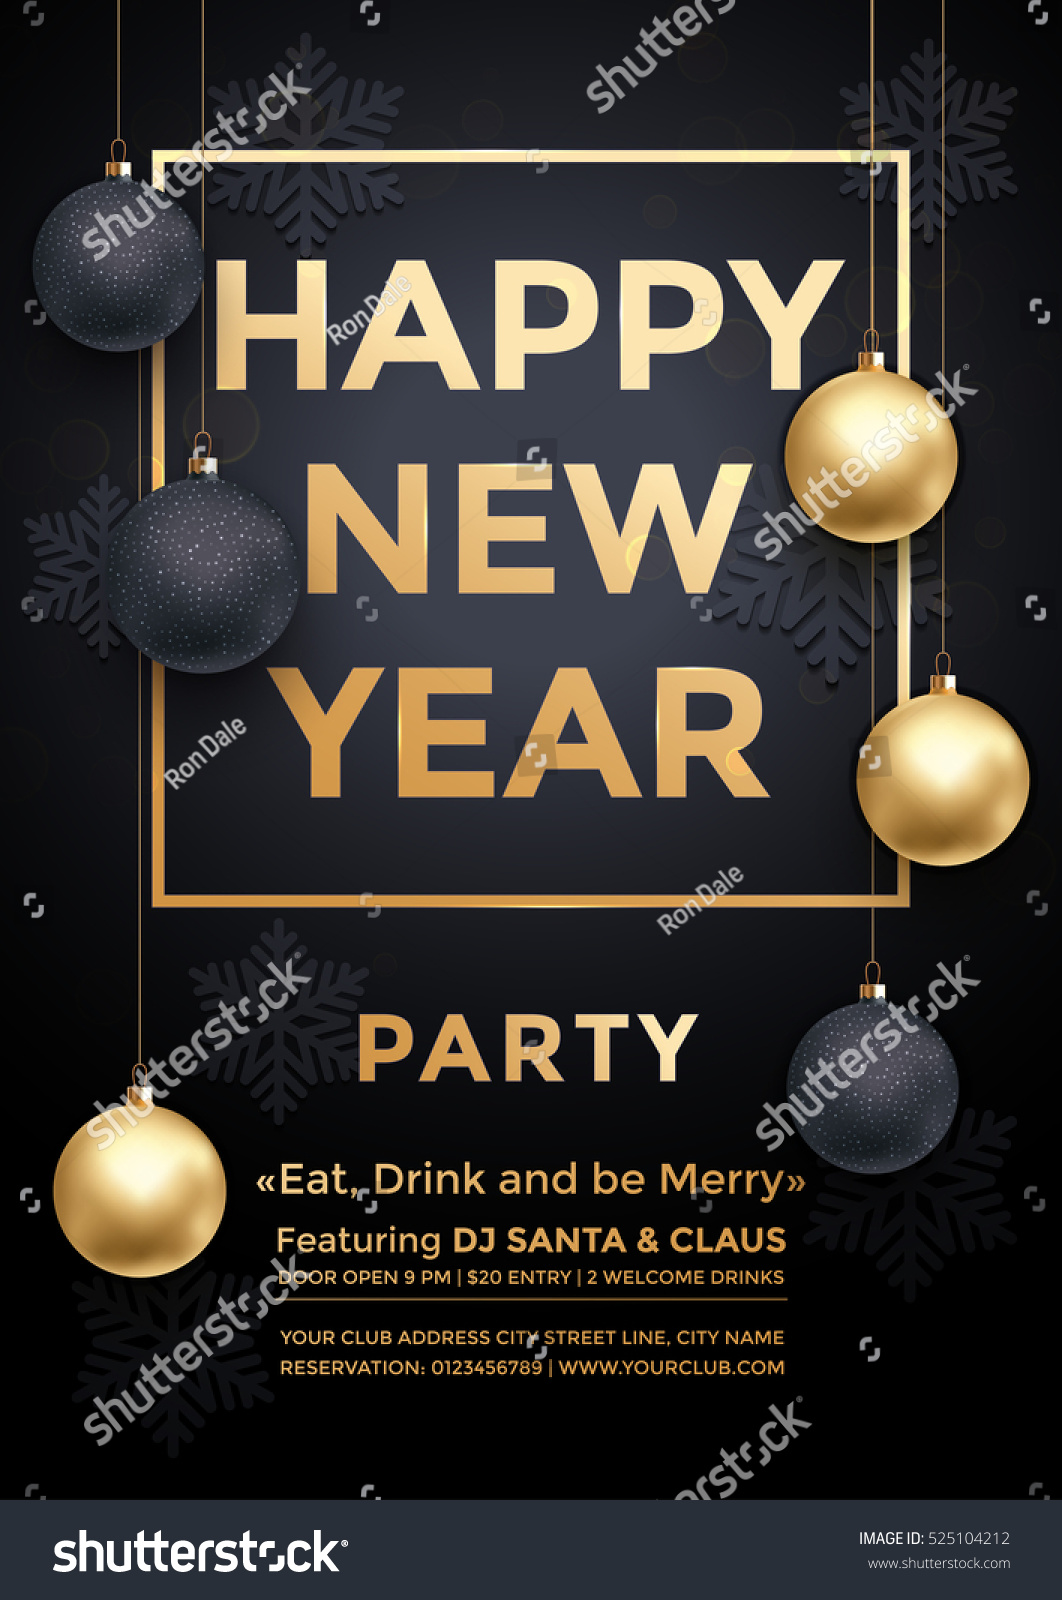 party december new year winter holiday club invitation poster premium calligraphy lettering with gold ornament